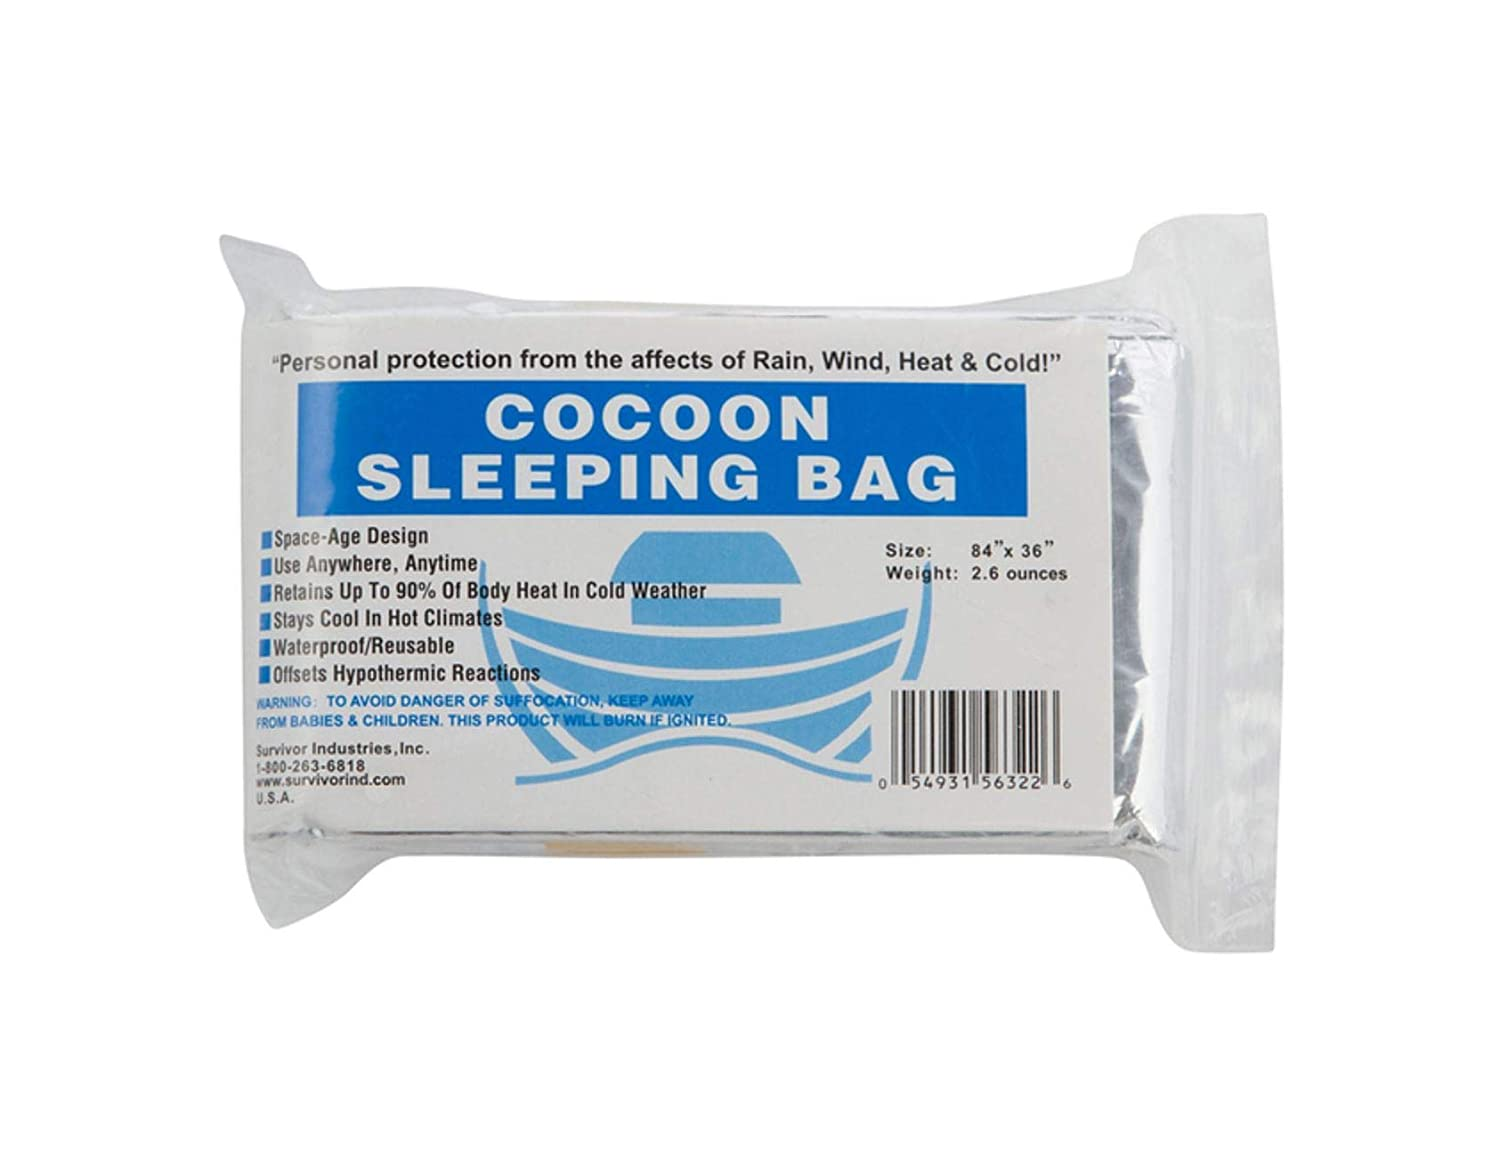 The Cocoon Sleeping Bag for Outdoors Marathons or First Aid Survival Hiking Survivor Industries